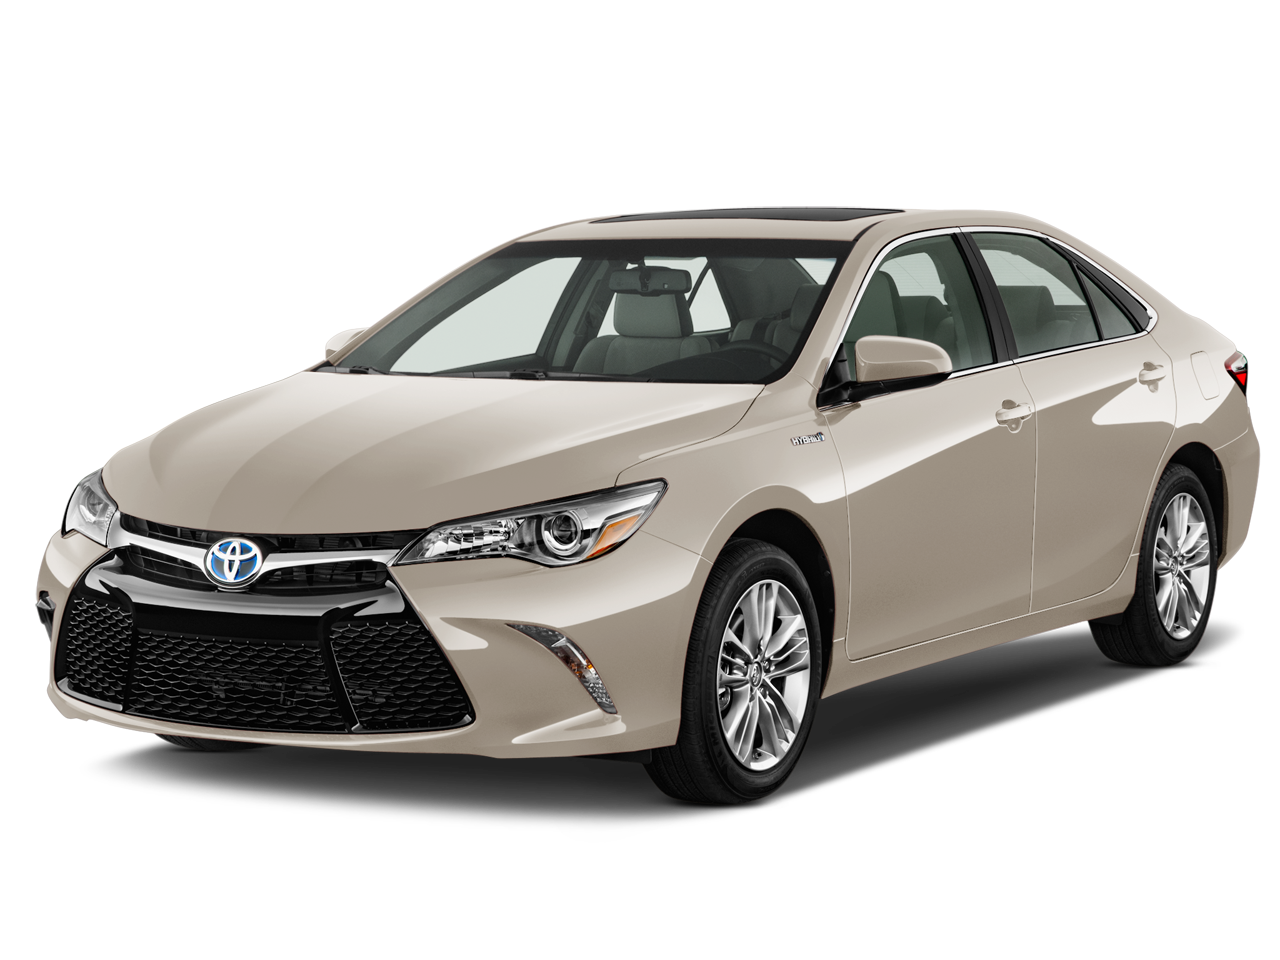 new 2017 toyota camry se near olathe ks olathe toyota. Black Bedroom Furniture Sets. Home Design Ideas